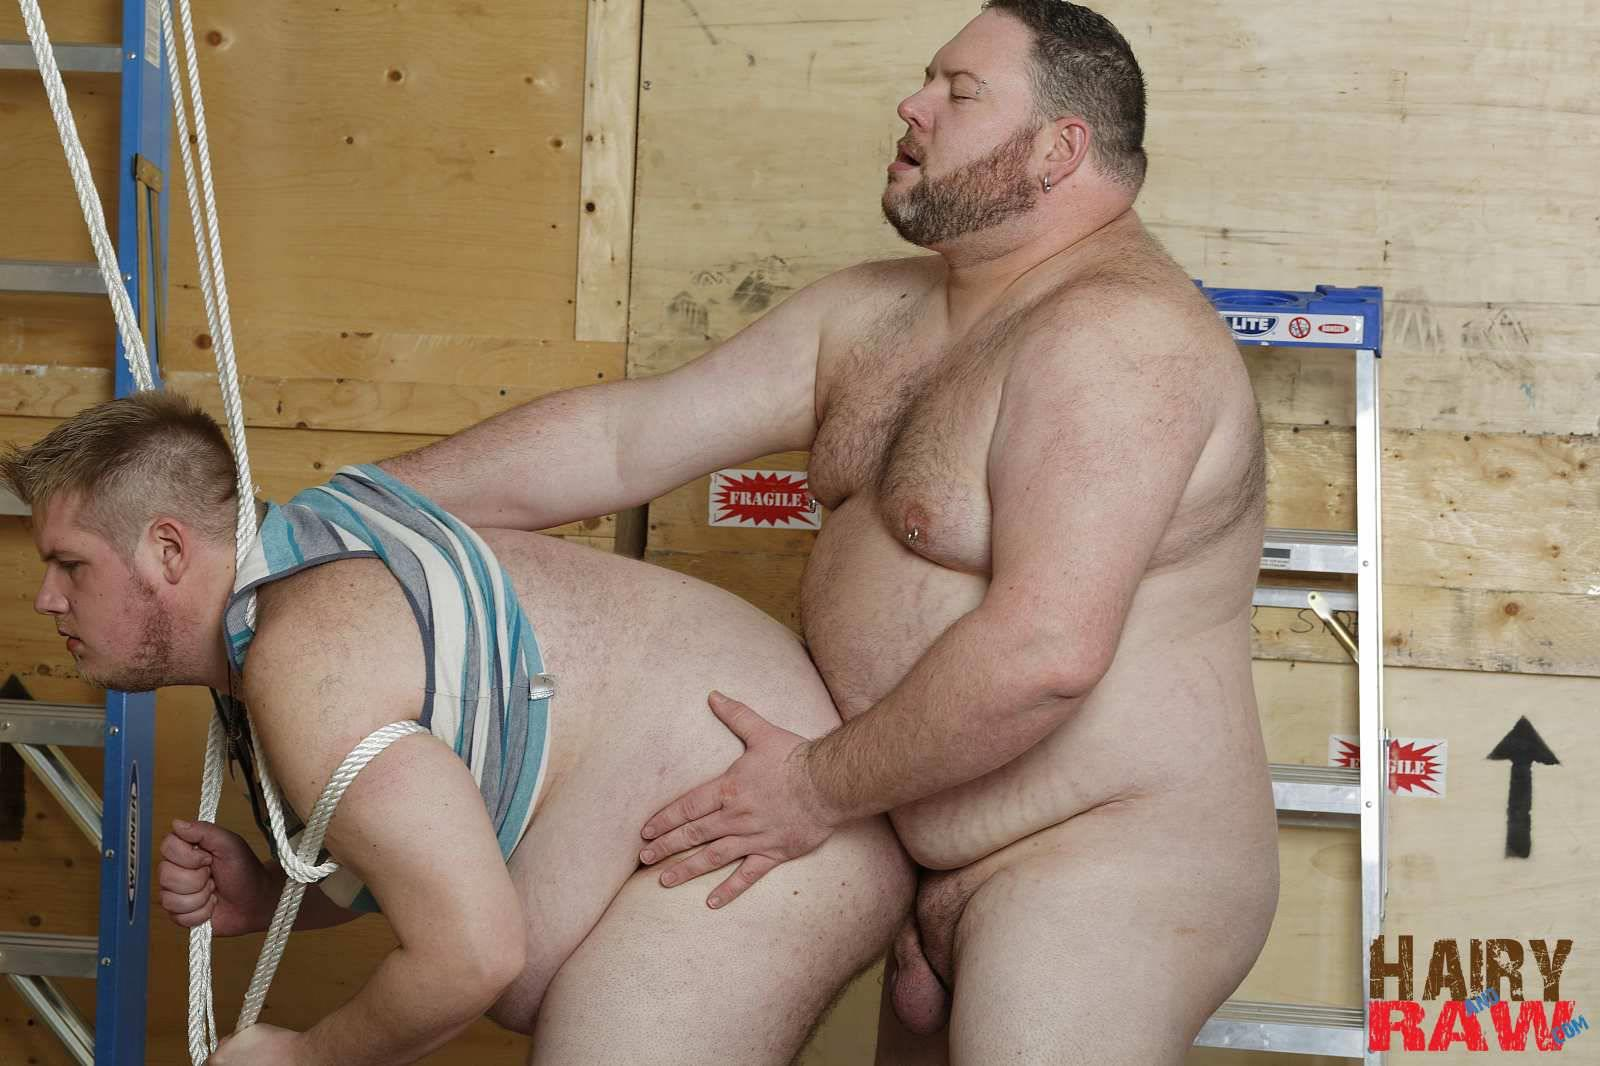 Hairy and Raw Bear Waters and Teddy Osborne Big Hairy Chubs Fucking Bareback Amateur Gay Porn 09 Super Chubs Fucking Bareback At The Warehouse